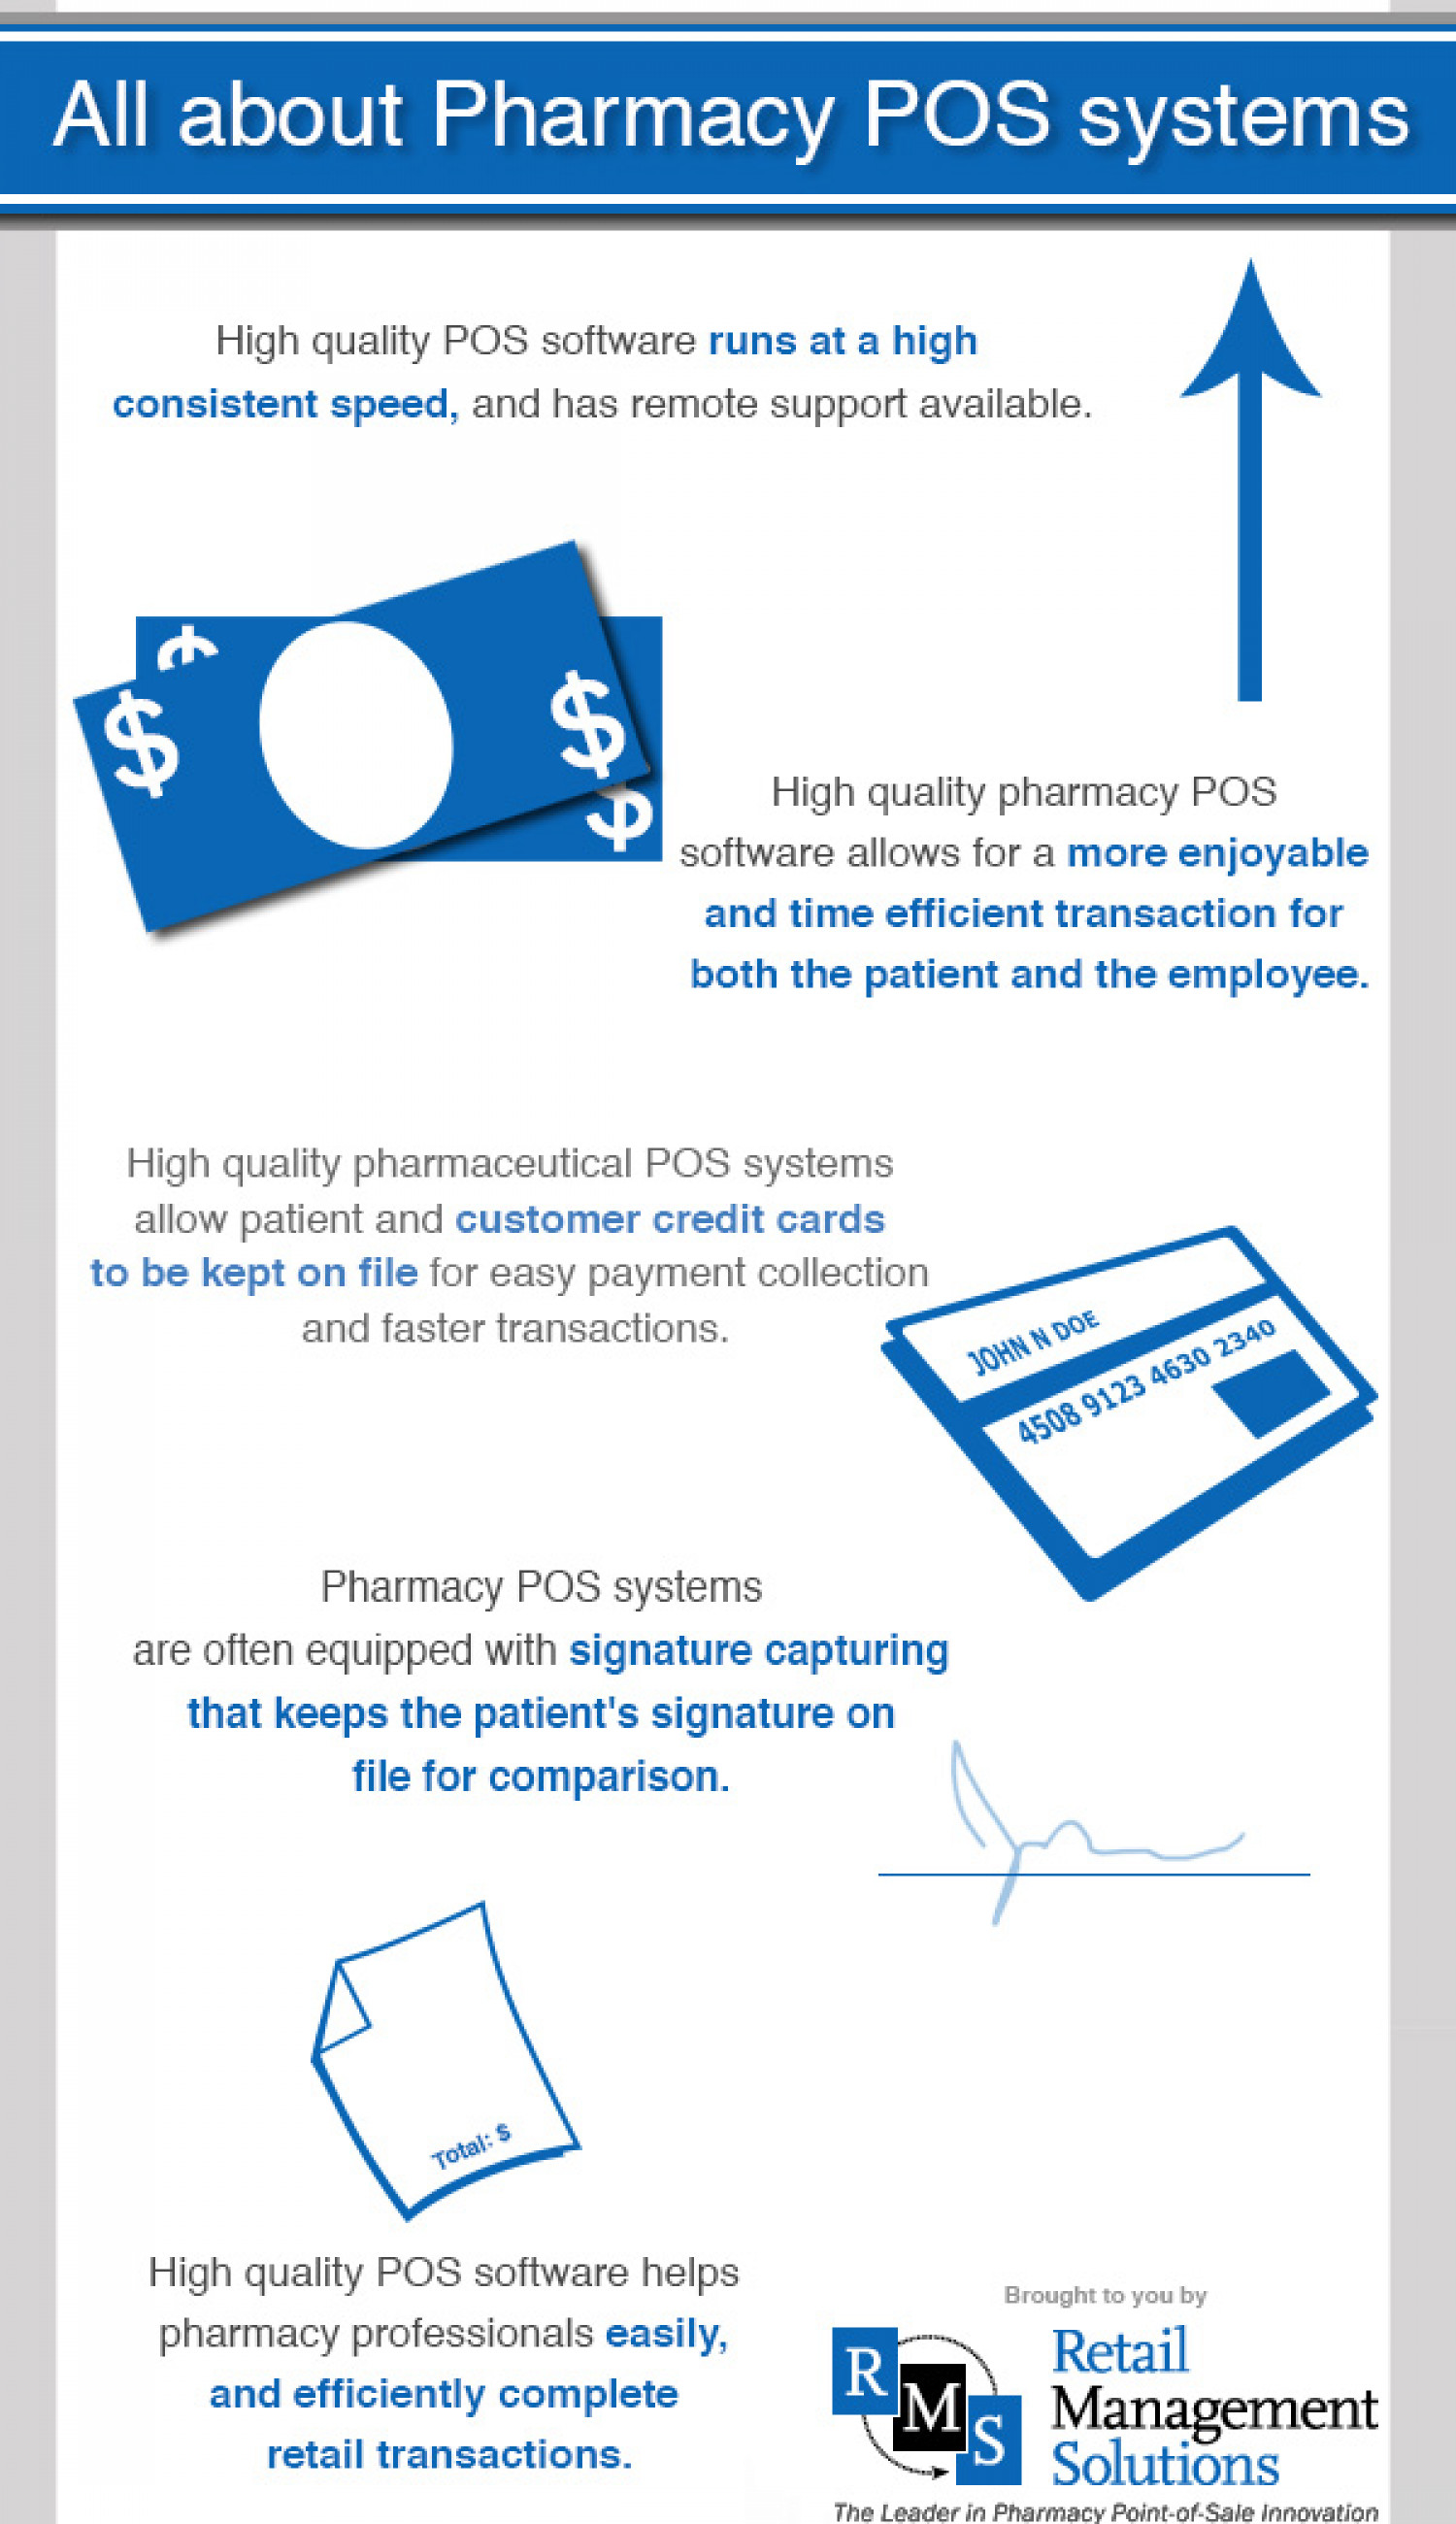 All About Pharmacy POS Systems Infographic